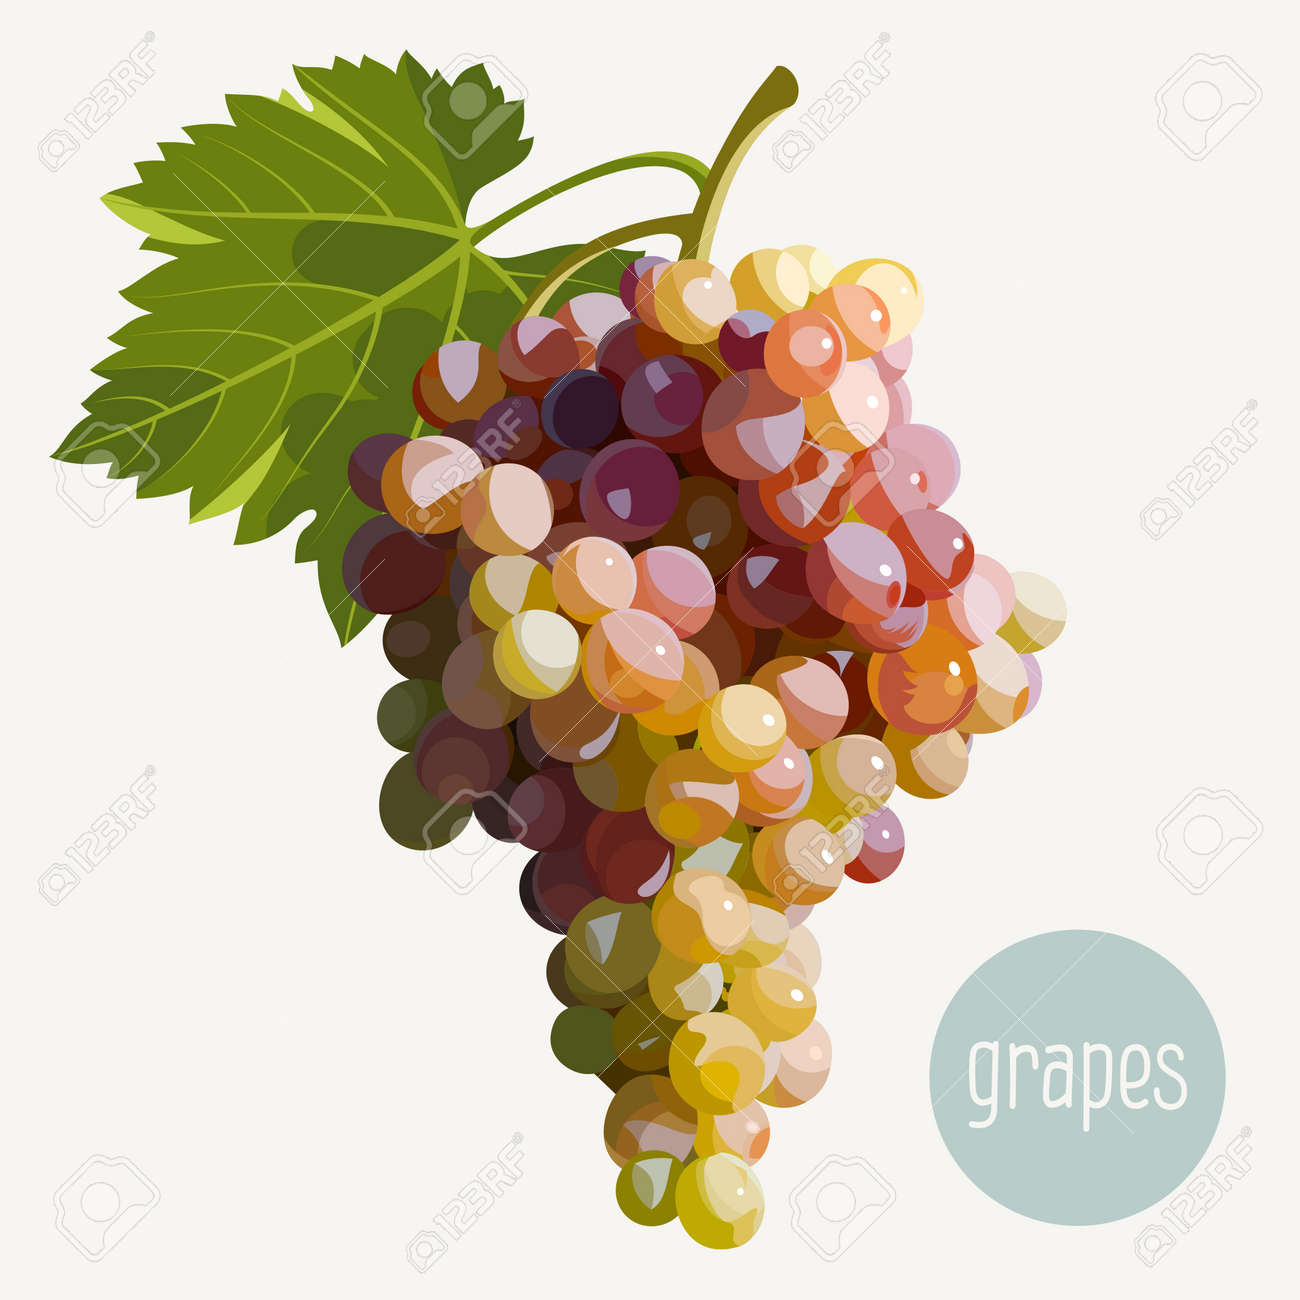 Vector illustration of a bunch of grapes - 35270812